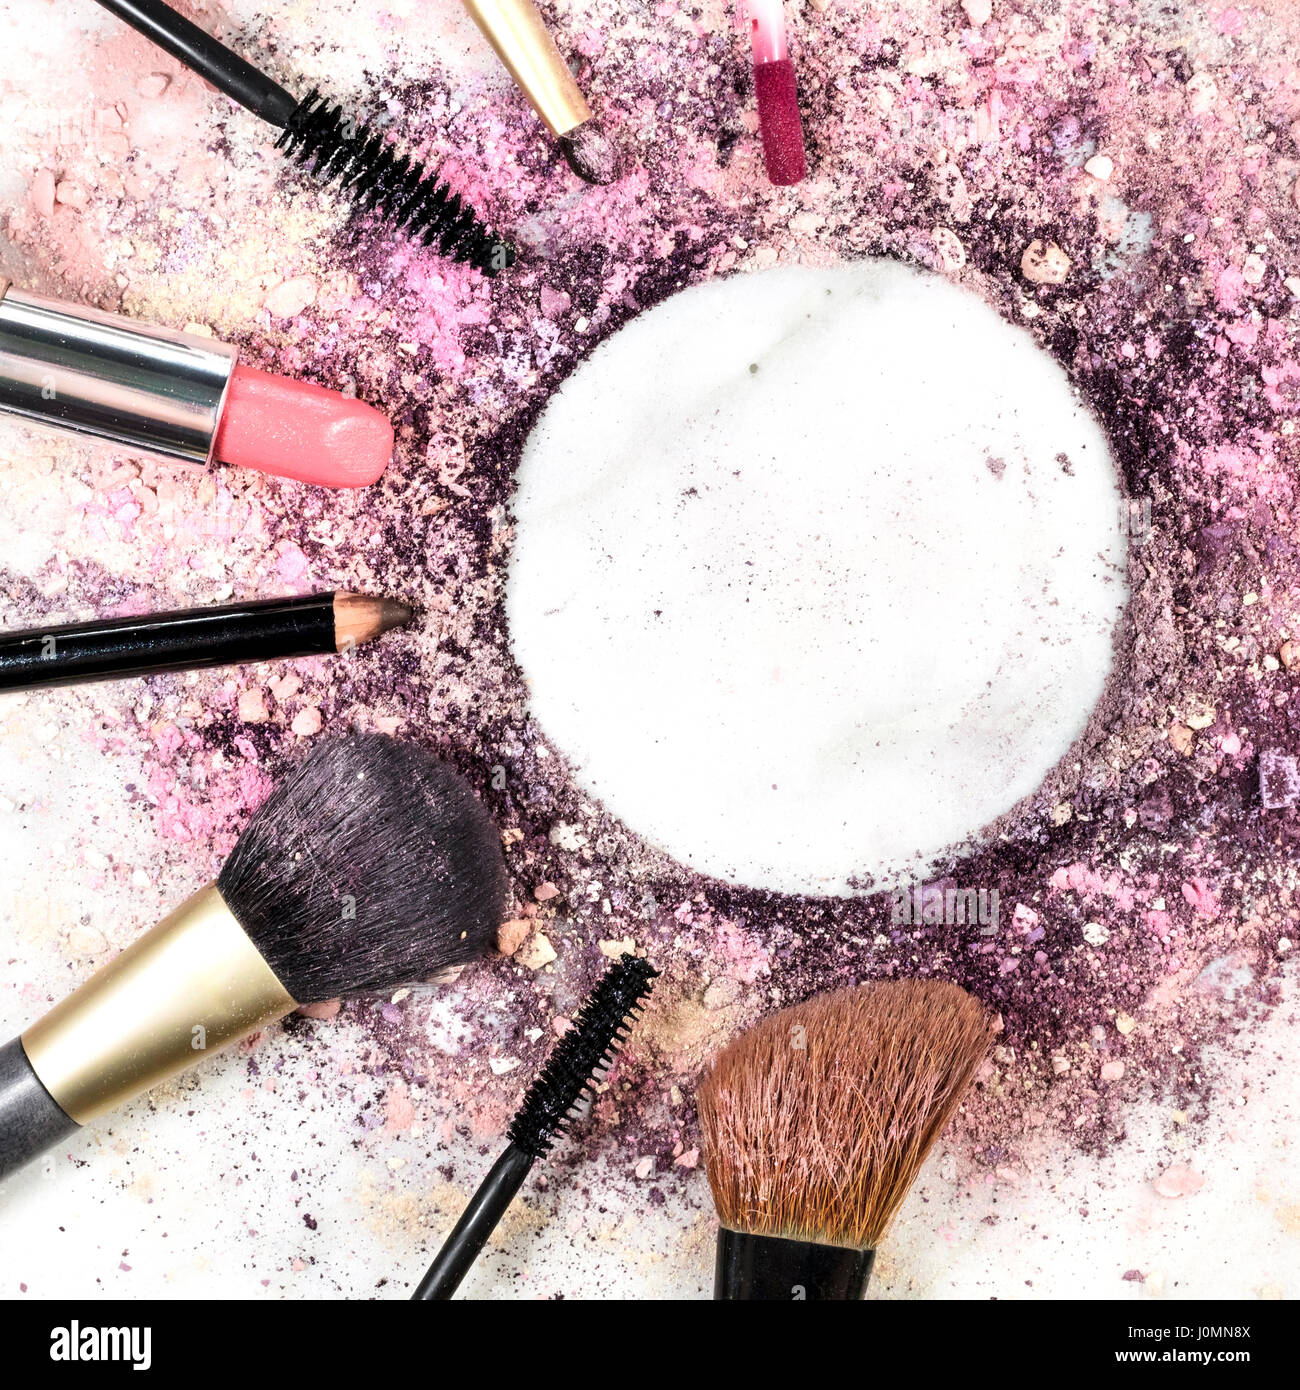 Crushed Powder Makeup Stock Photos   Crushed Powder Makeup Stock     Makeup brushes  pencil  lipstick and other objects  forming a frame on a  light